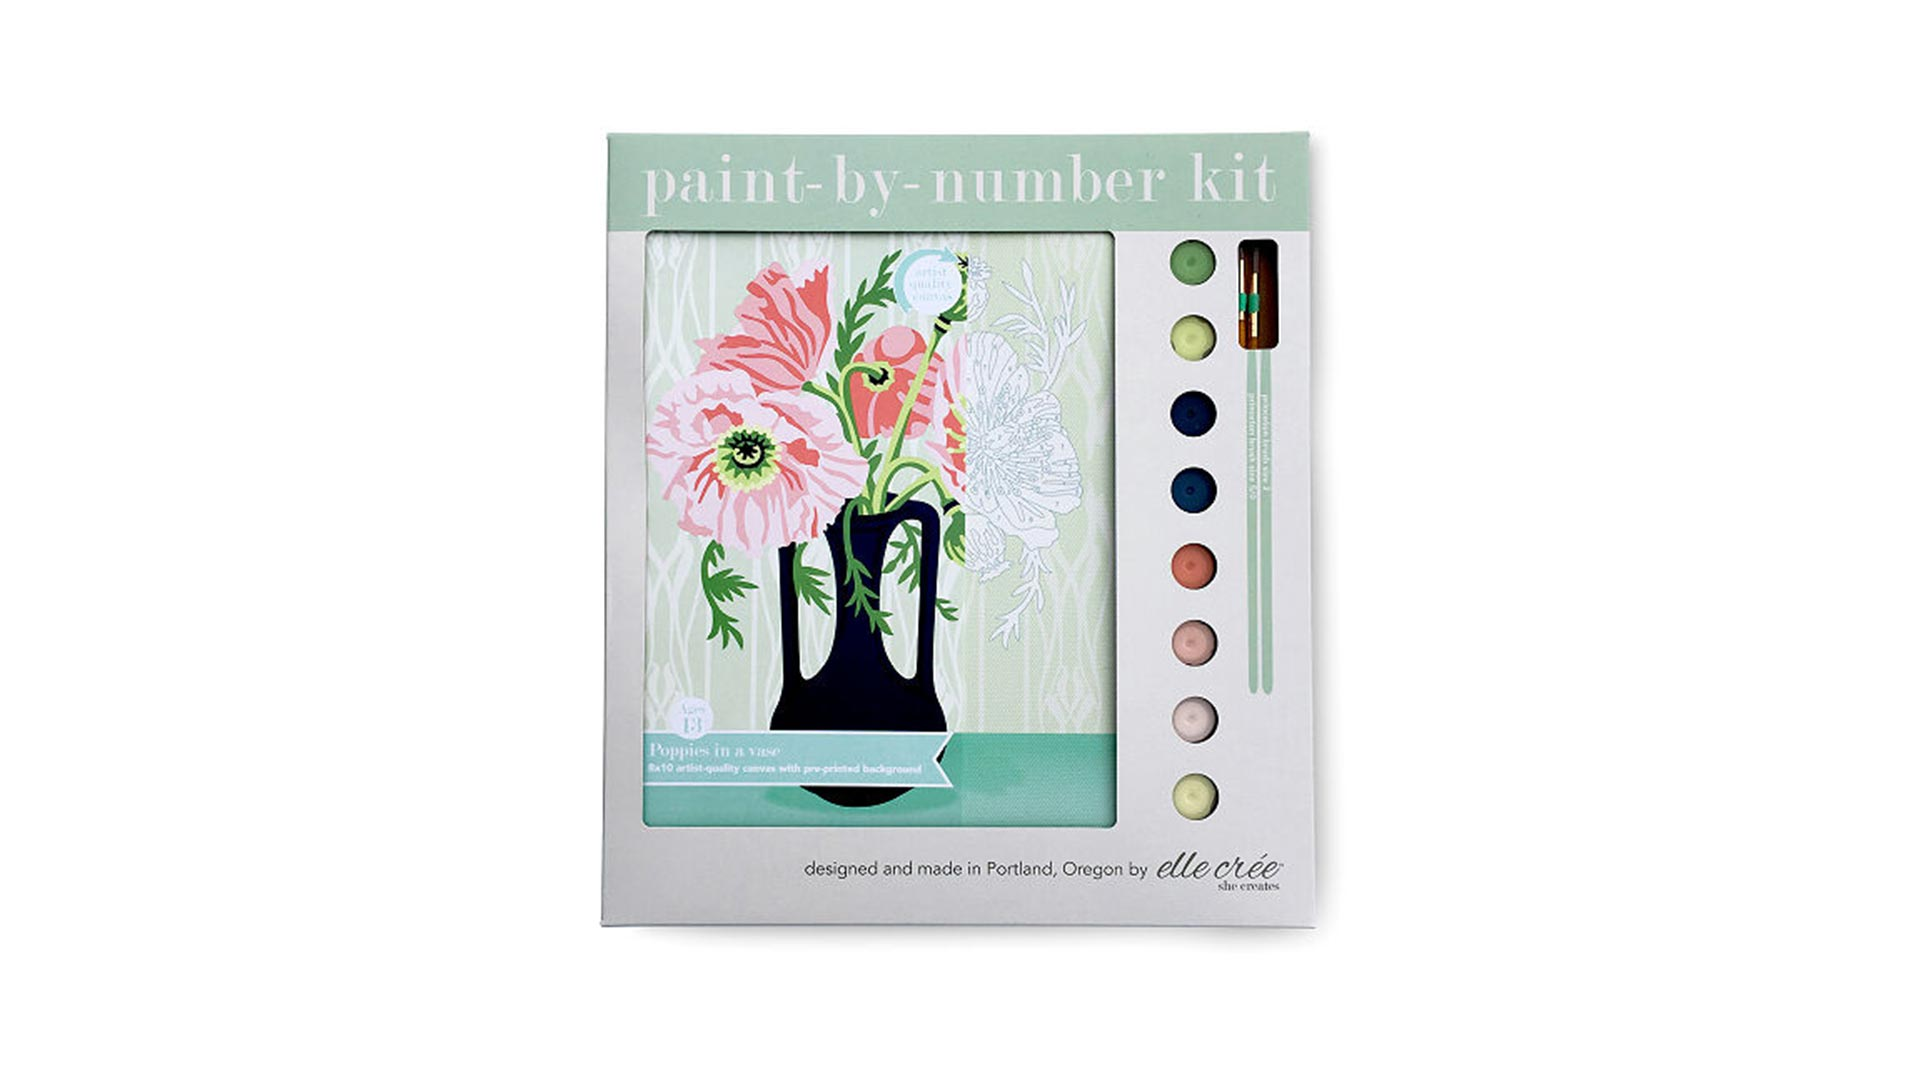 Floral Paint-by-Number Kit